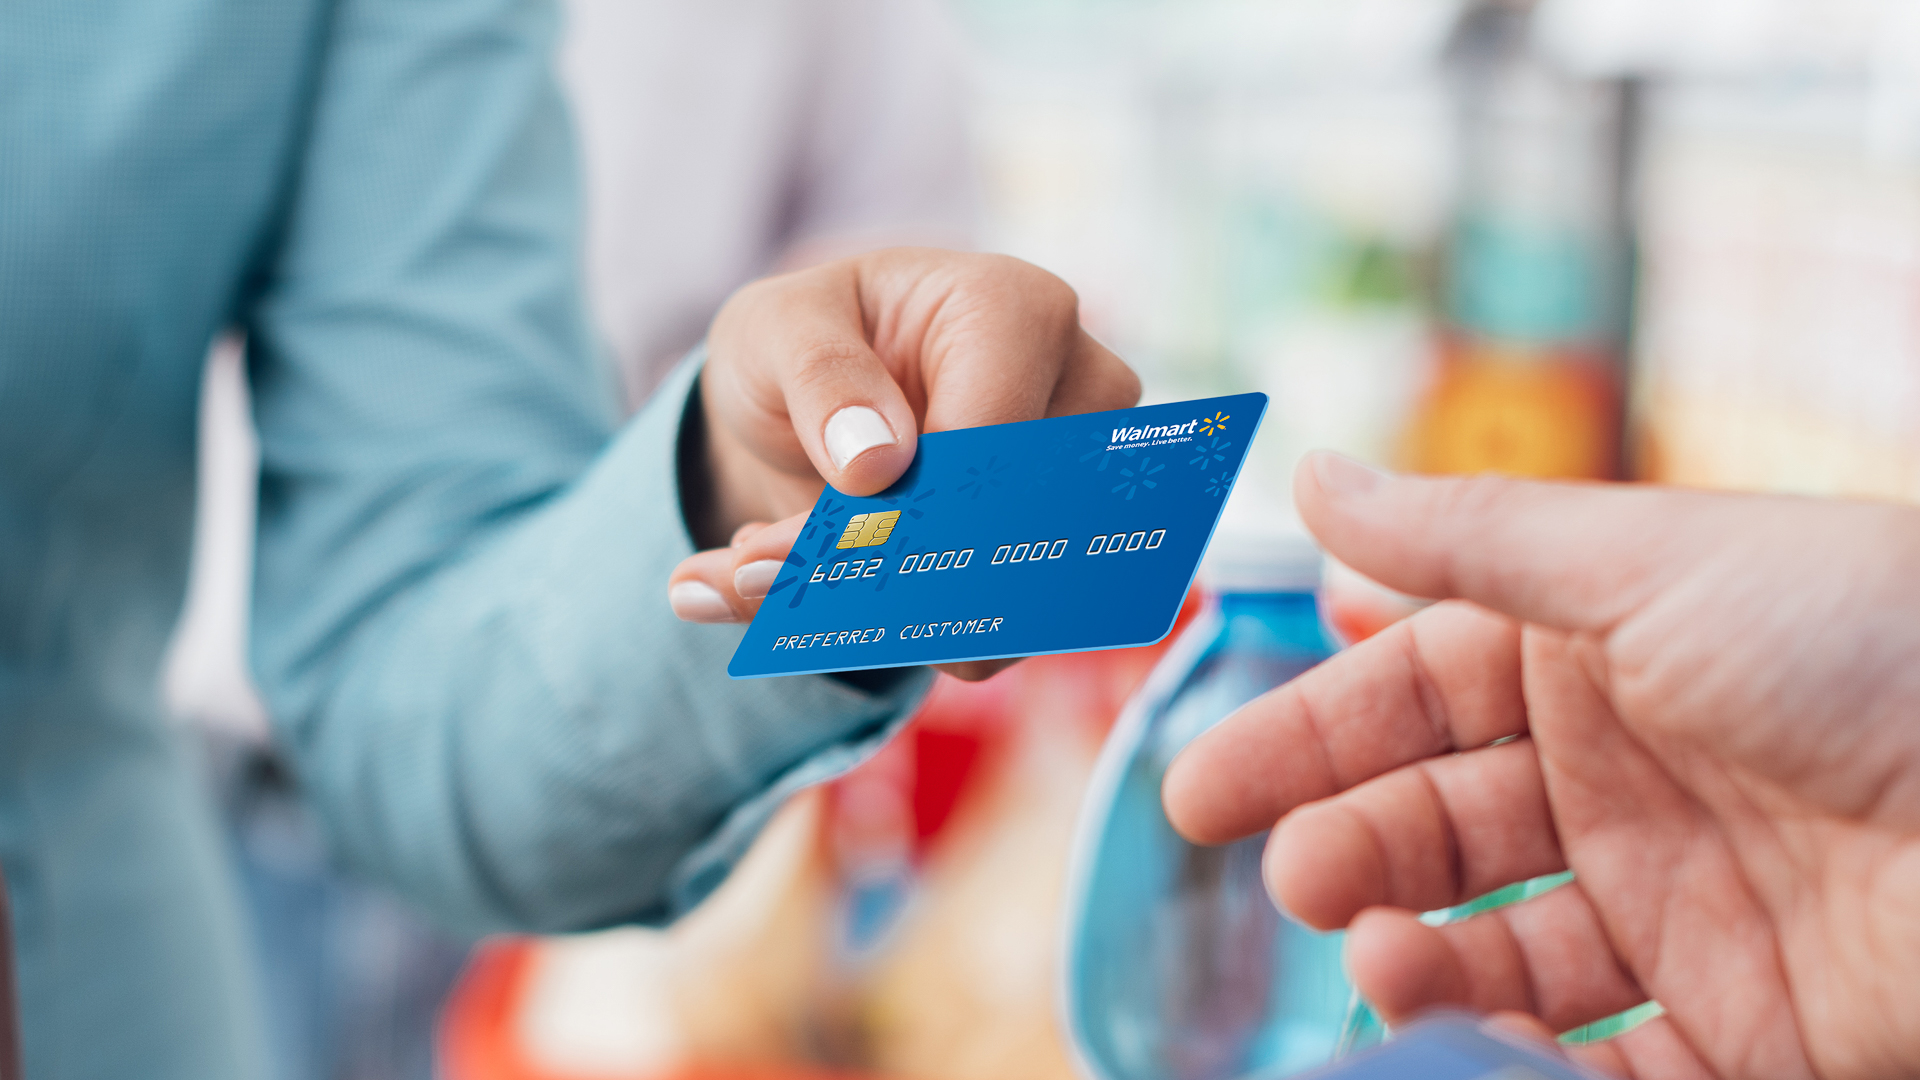 Lowe s Store Credit Card Review A Look at the Lowe s Advantage Card